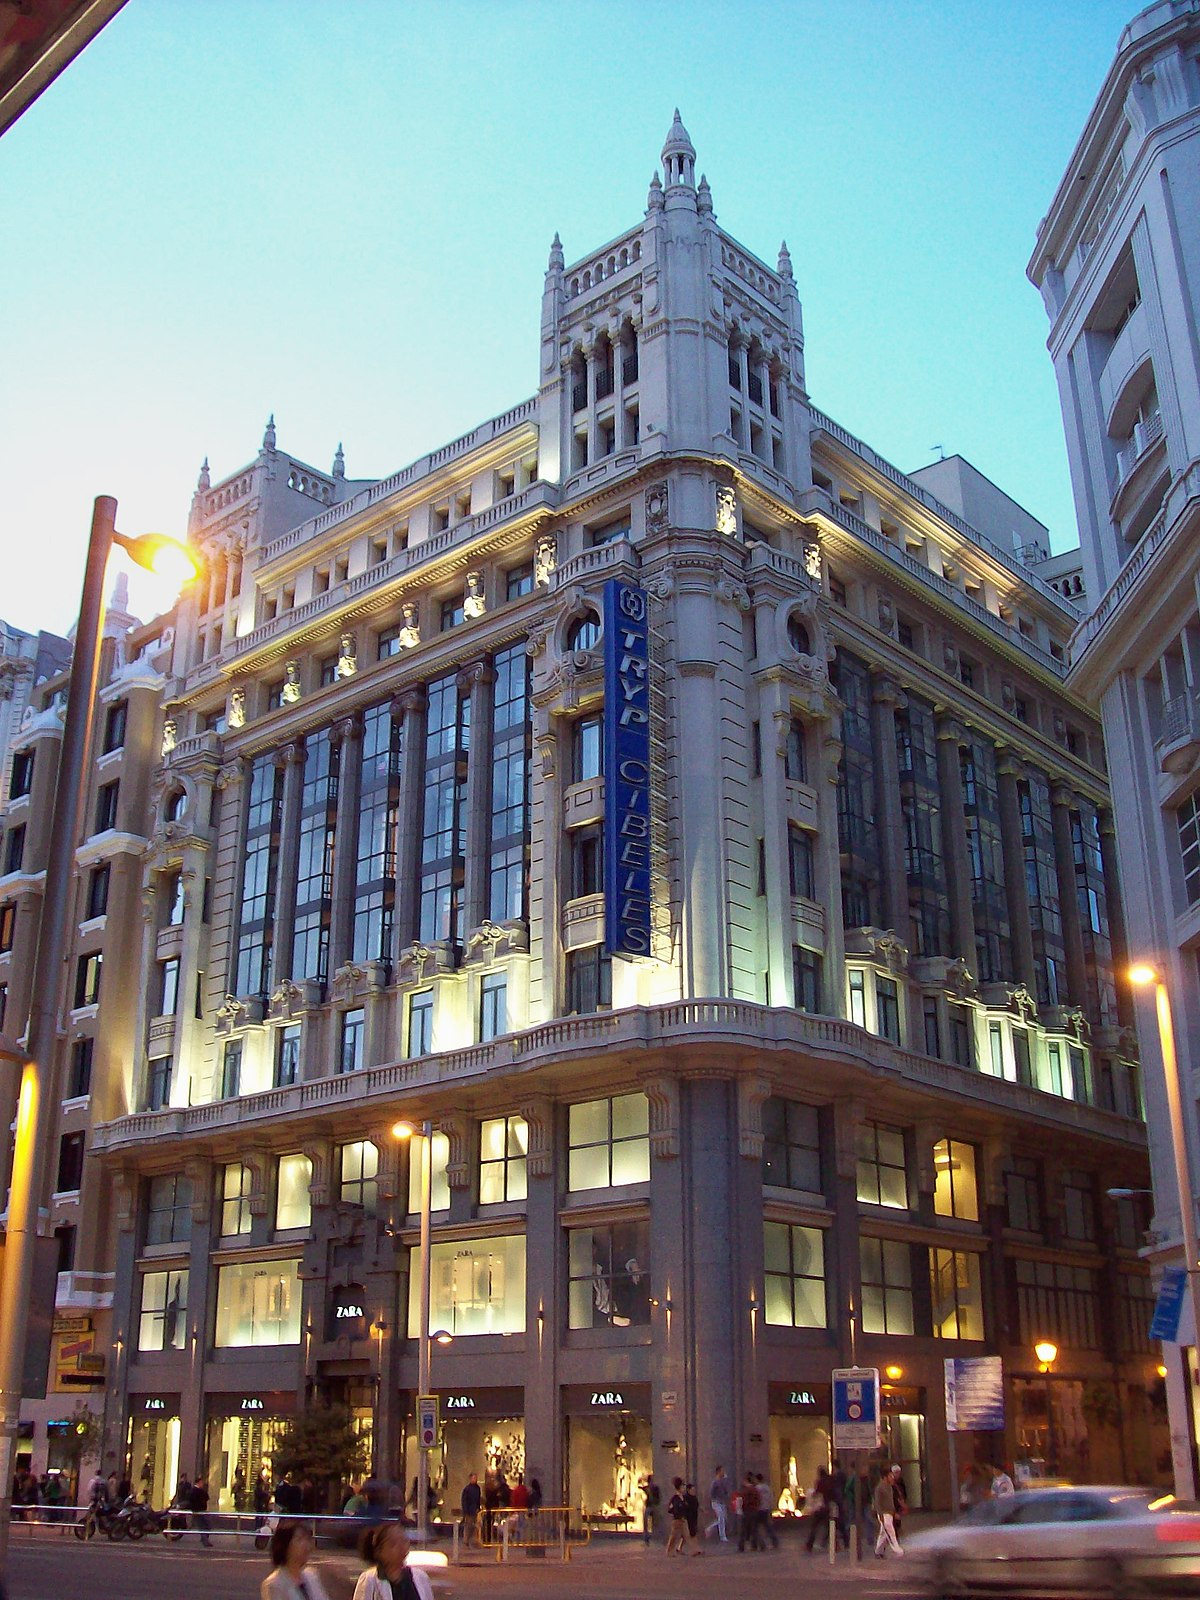 Tryp hoteles wikipedia la enciclopedia libre for Hoteles vanguardistas en madrid